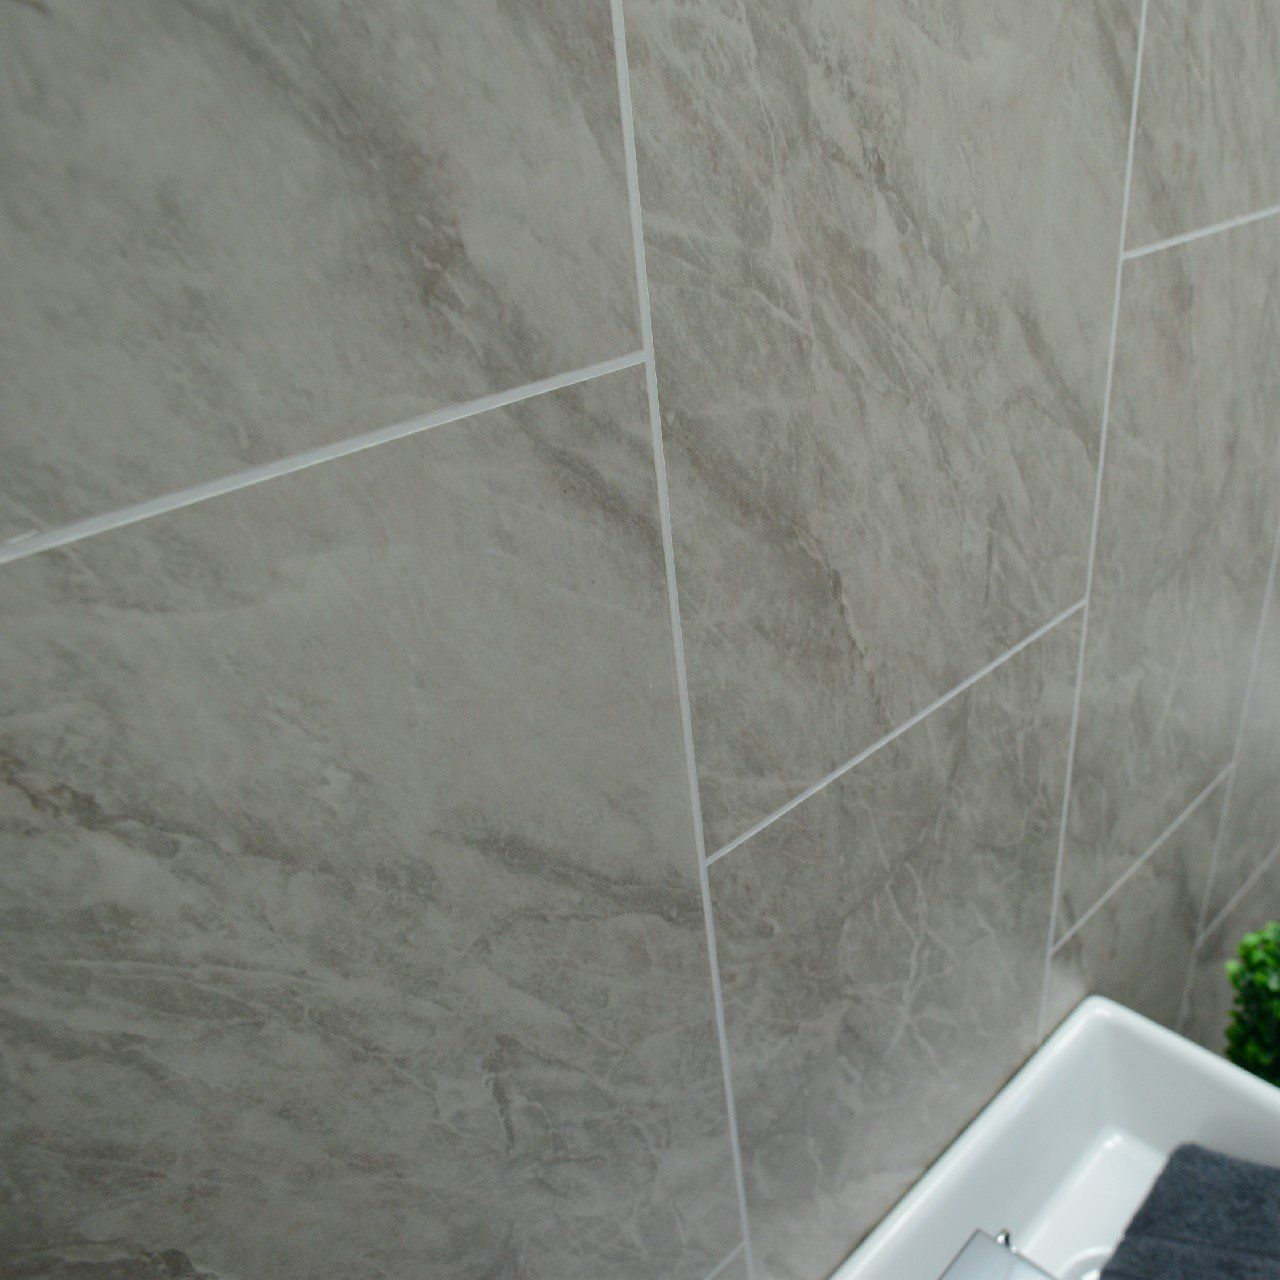 Grey marble bathroom wall panels Tile effect cladding used